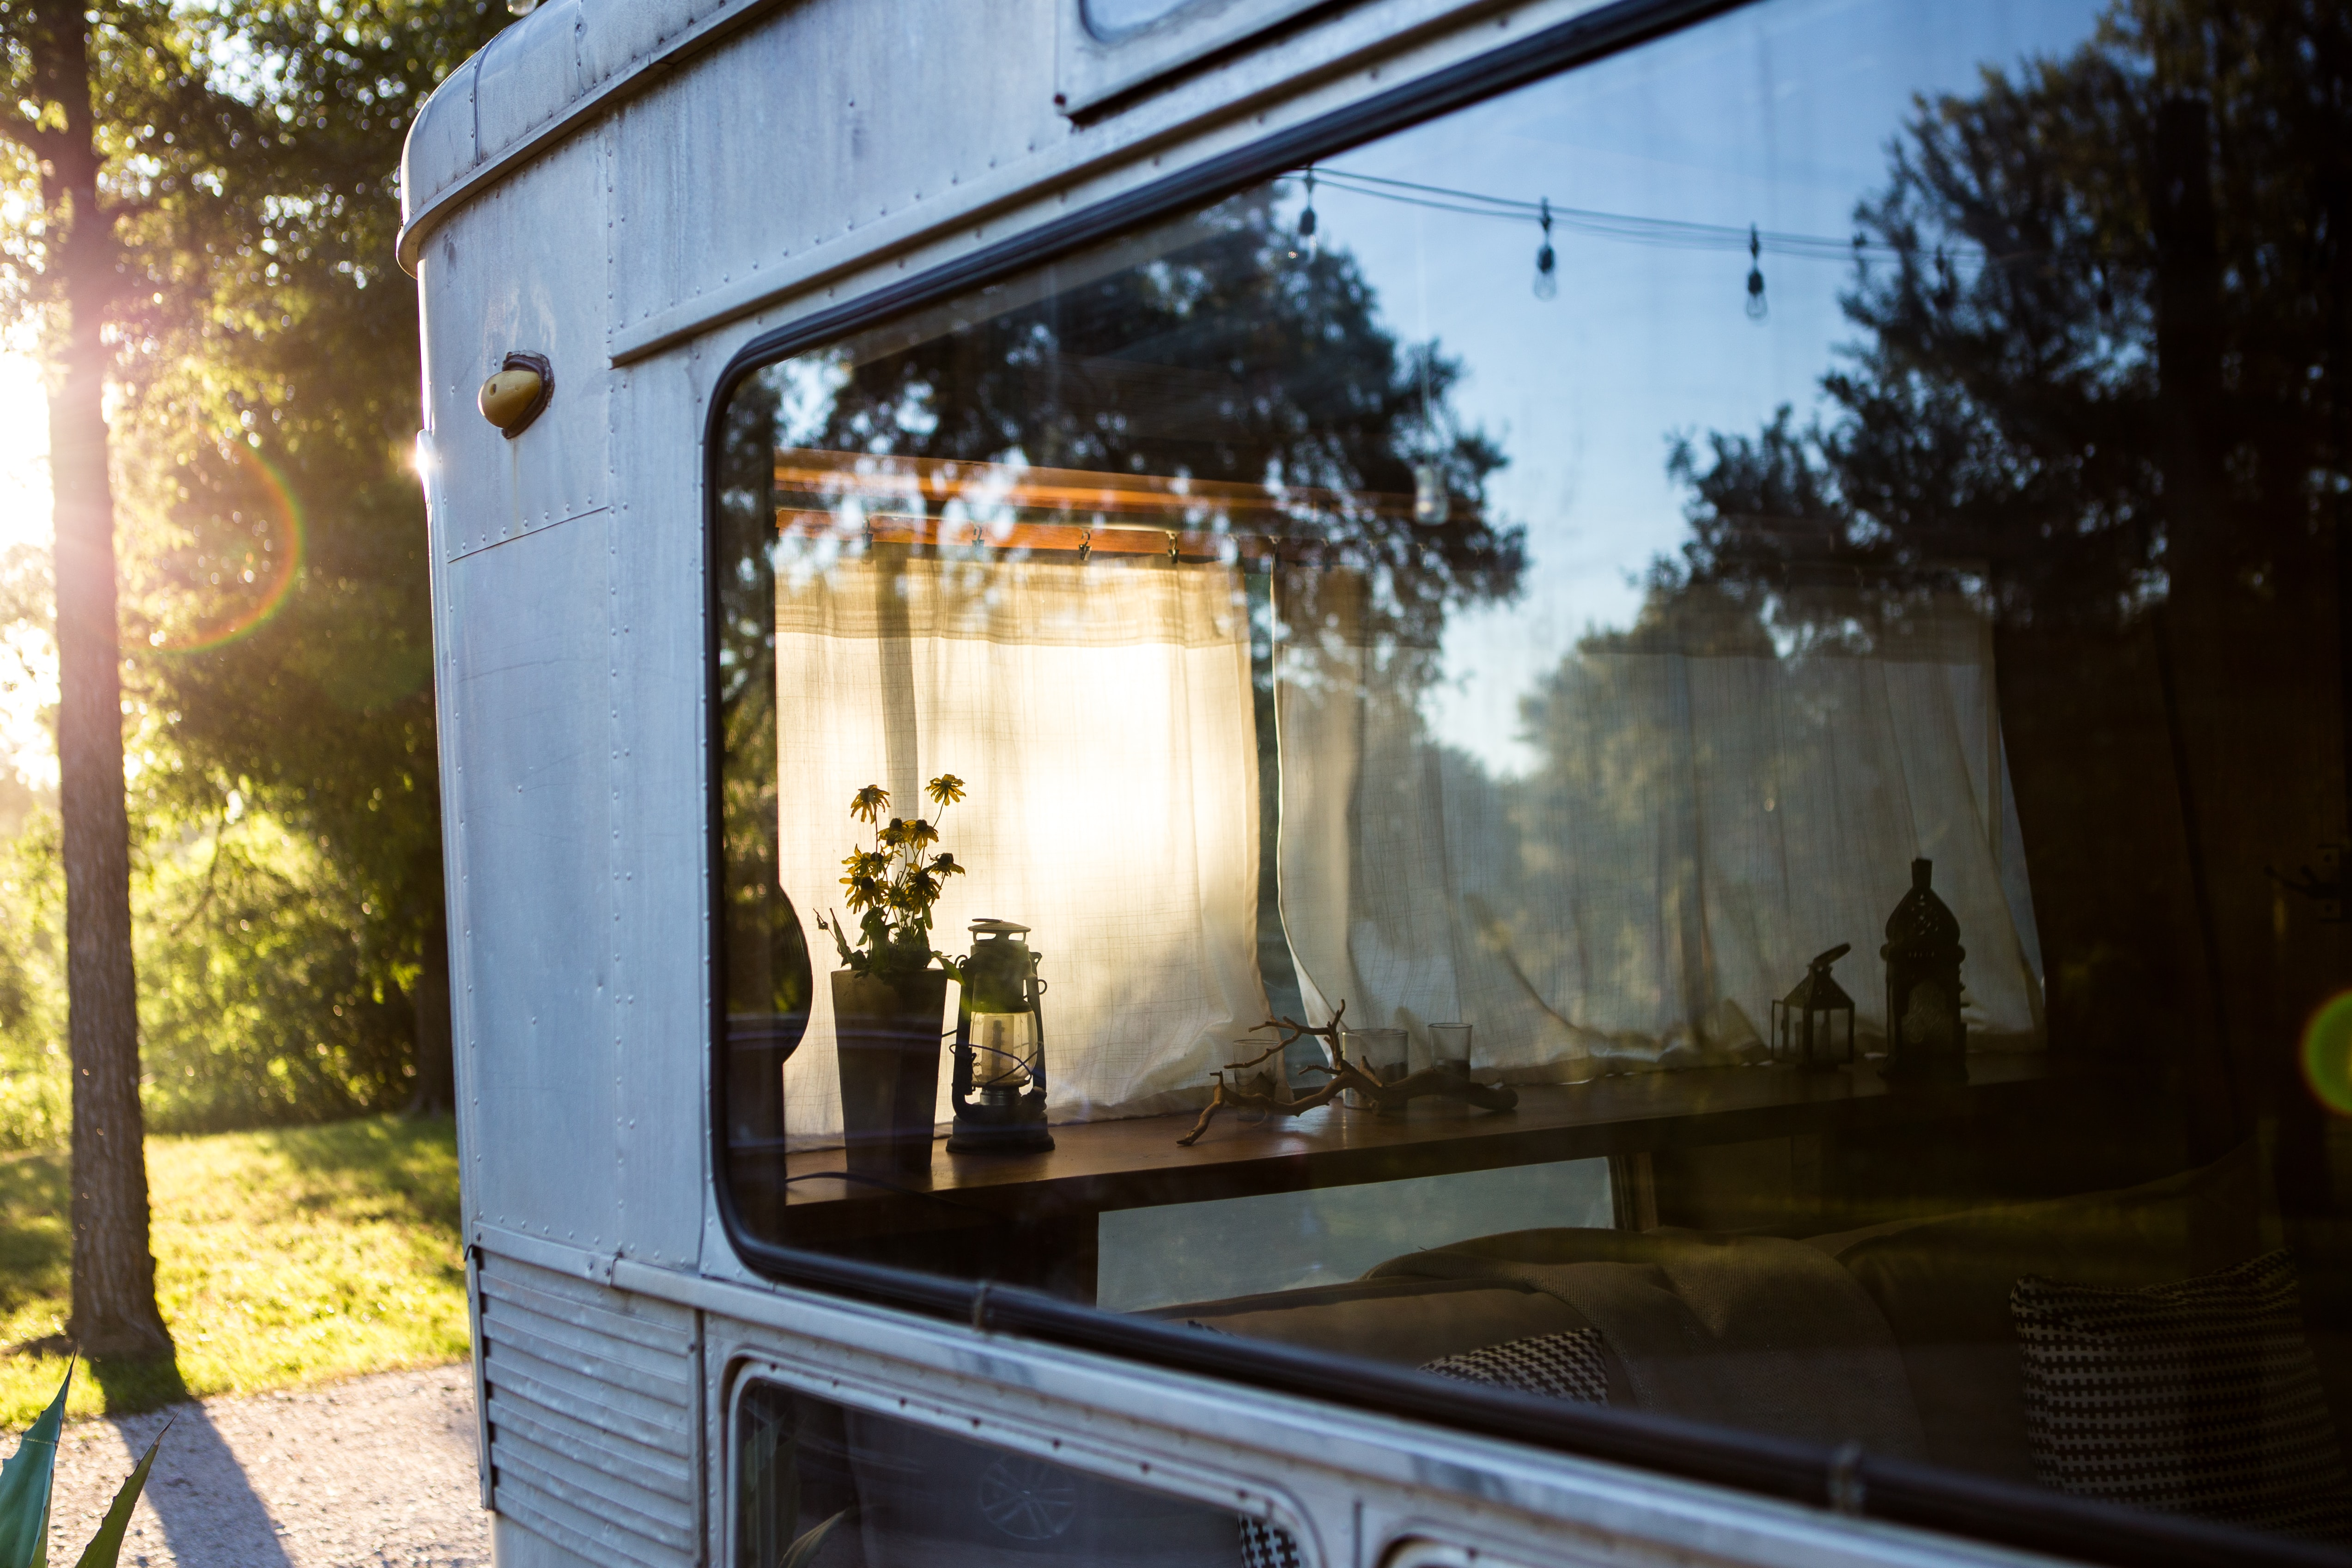 Looking in through a window of a mobile home with a vase on the counter